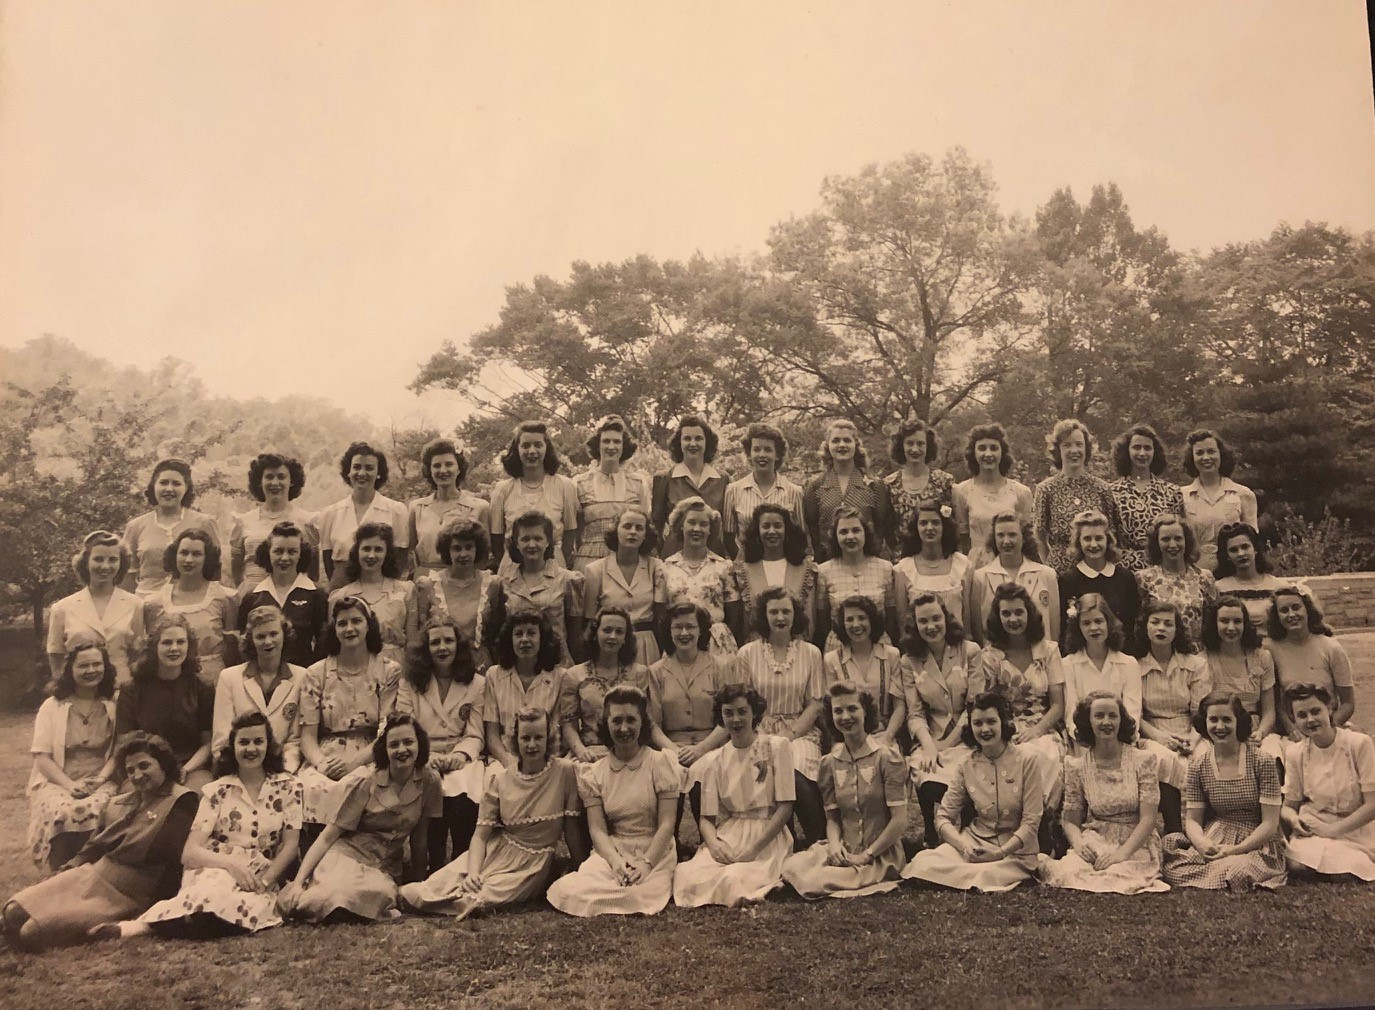 The Class of 1944, pictured as freshmen, with Shirley (top row, second from left) and Mary Agnes (second row, sixth from right). Photos courtesy of Lois Perch Villemaire.